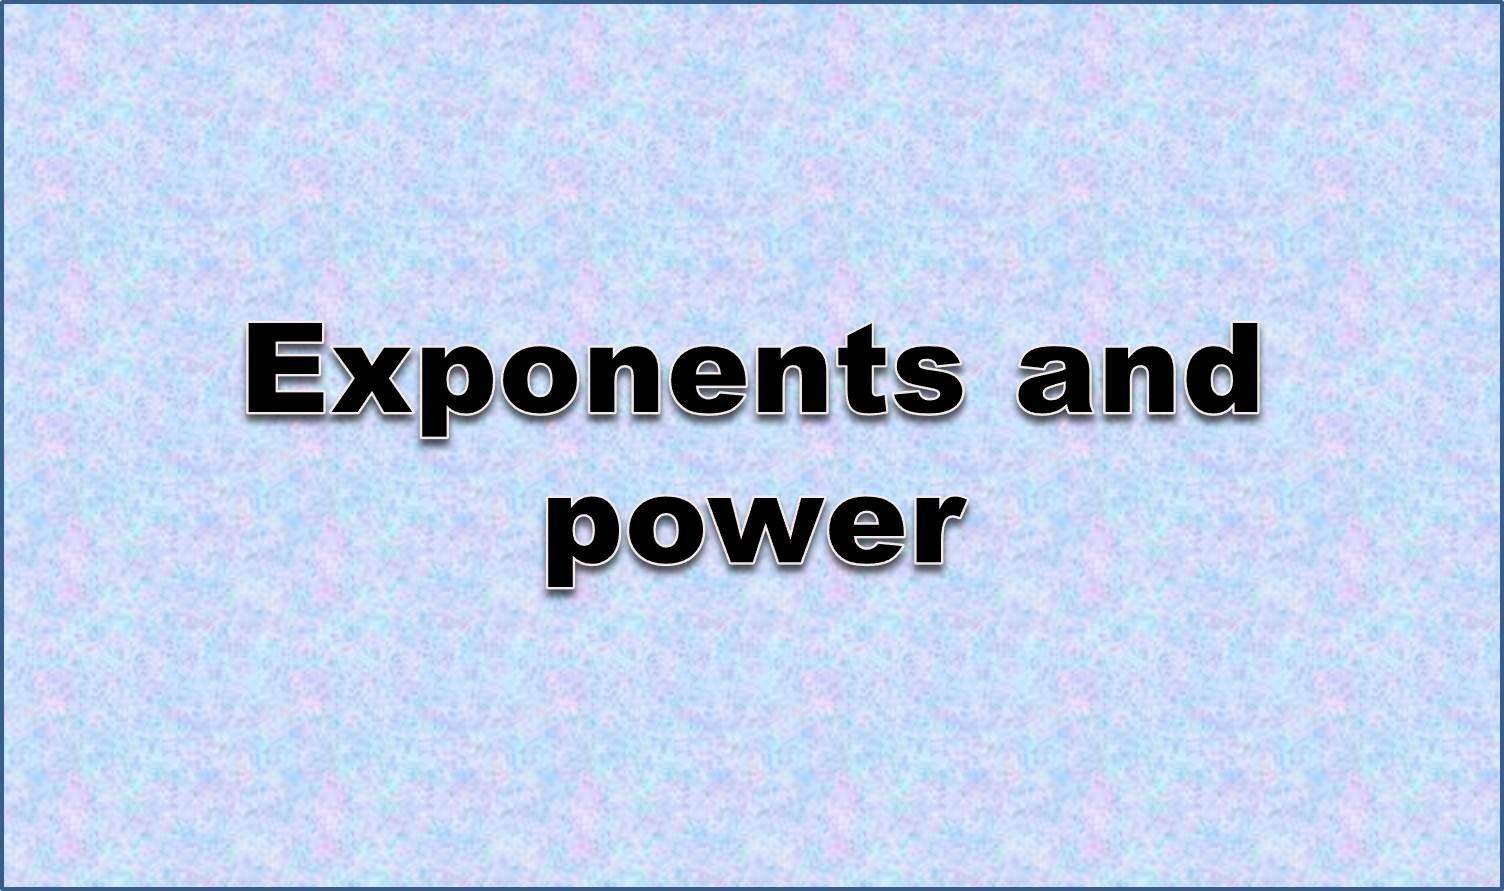 http://study.aisectonline.com/images/Negative exponent intuition.jpg